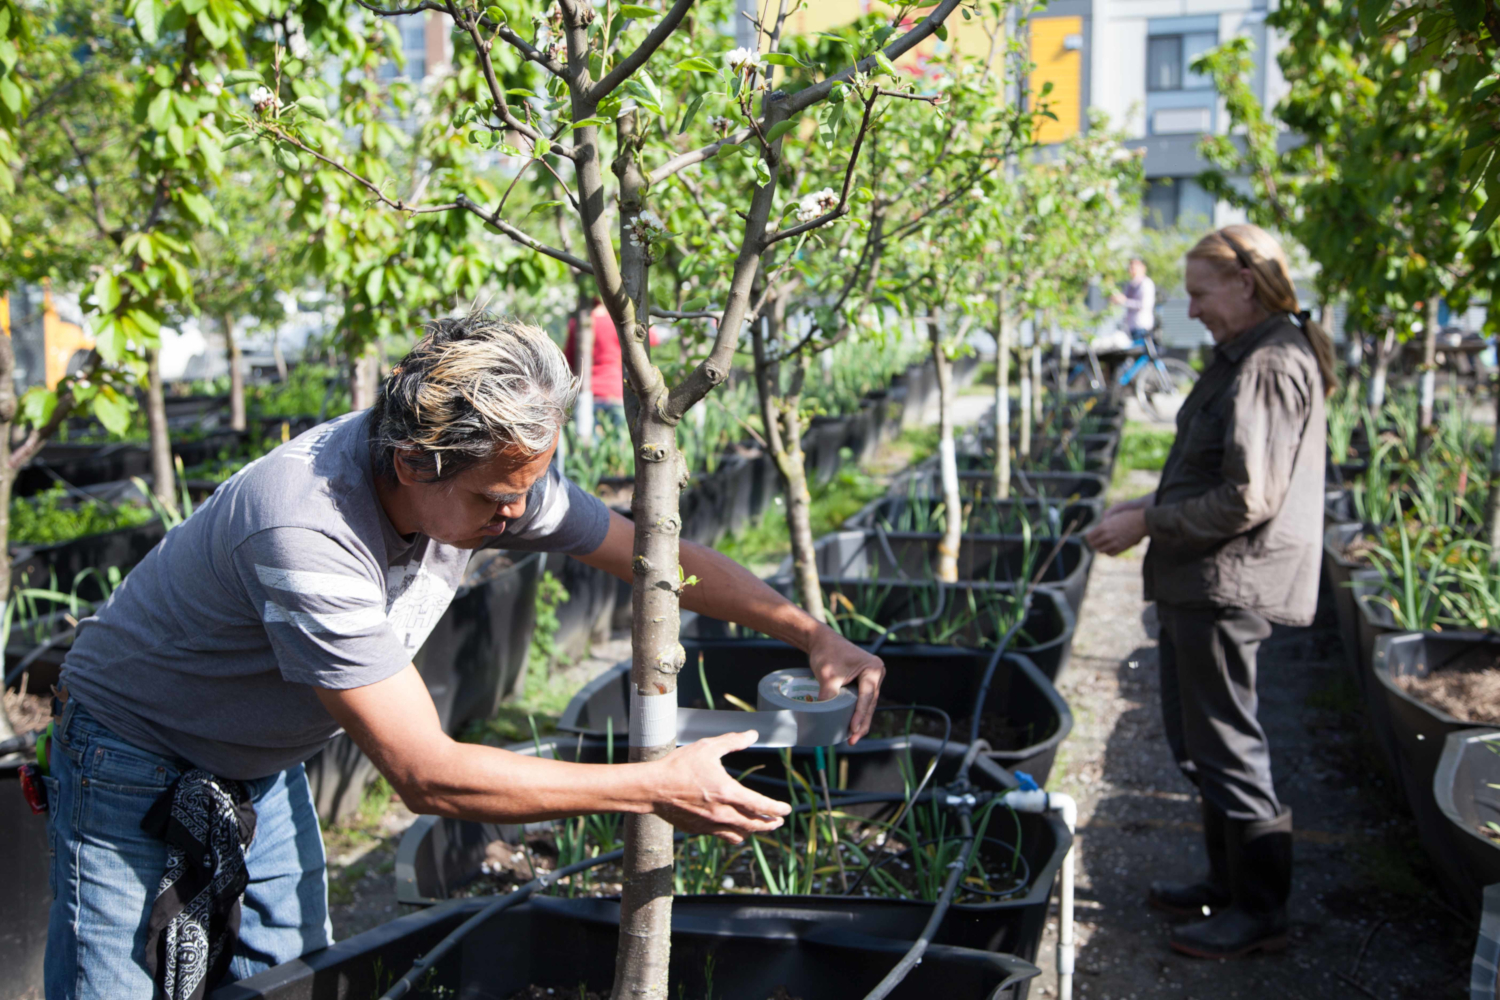 Vancouver's Sole Food Street Farms transforms vacant urban land into street farms that grow artisan quality fruits and vegetables, available at farmer's markets, local restaurants, and retail outlets. Sole Food's mission is to empower individuals with limited resources by providing jobs, agricultural training and inclusion in a supportive community of farmers and food lovers. (credits: Province of British Columbia / Flickr Creative Commons Attribution-NonCommercial-NoDerivs 2.0 Generic (CC BY-NC-ND 2.0))